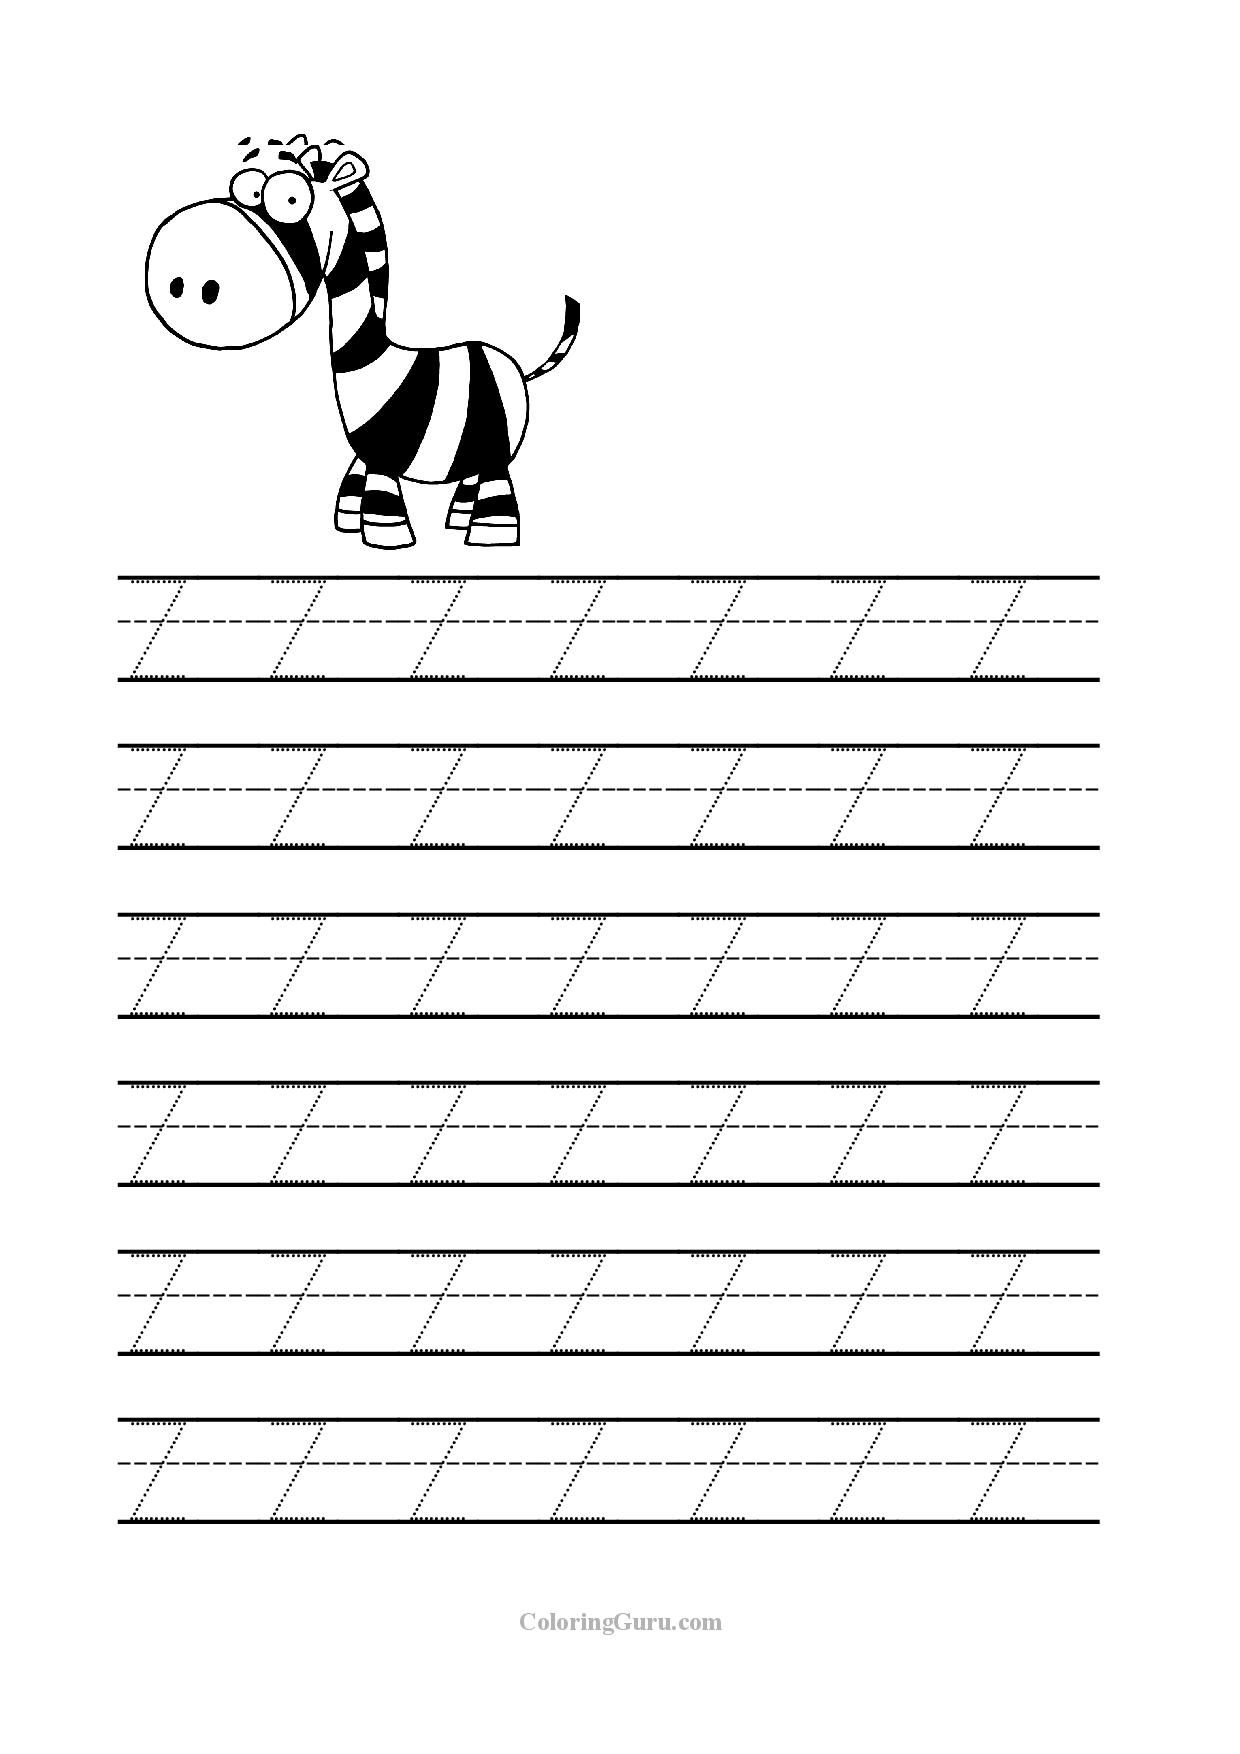 worksheet Letter Z Worksheet free printable tracing letter z worksheets for preschool school preschool